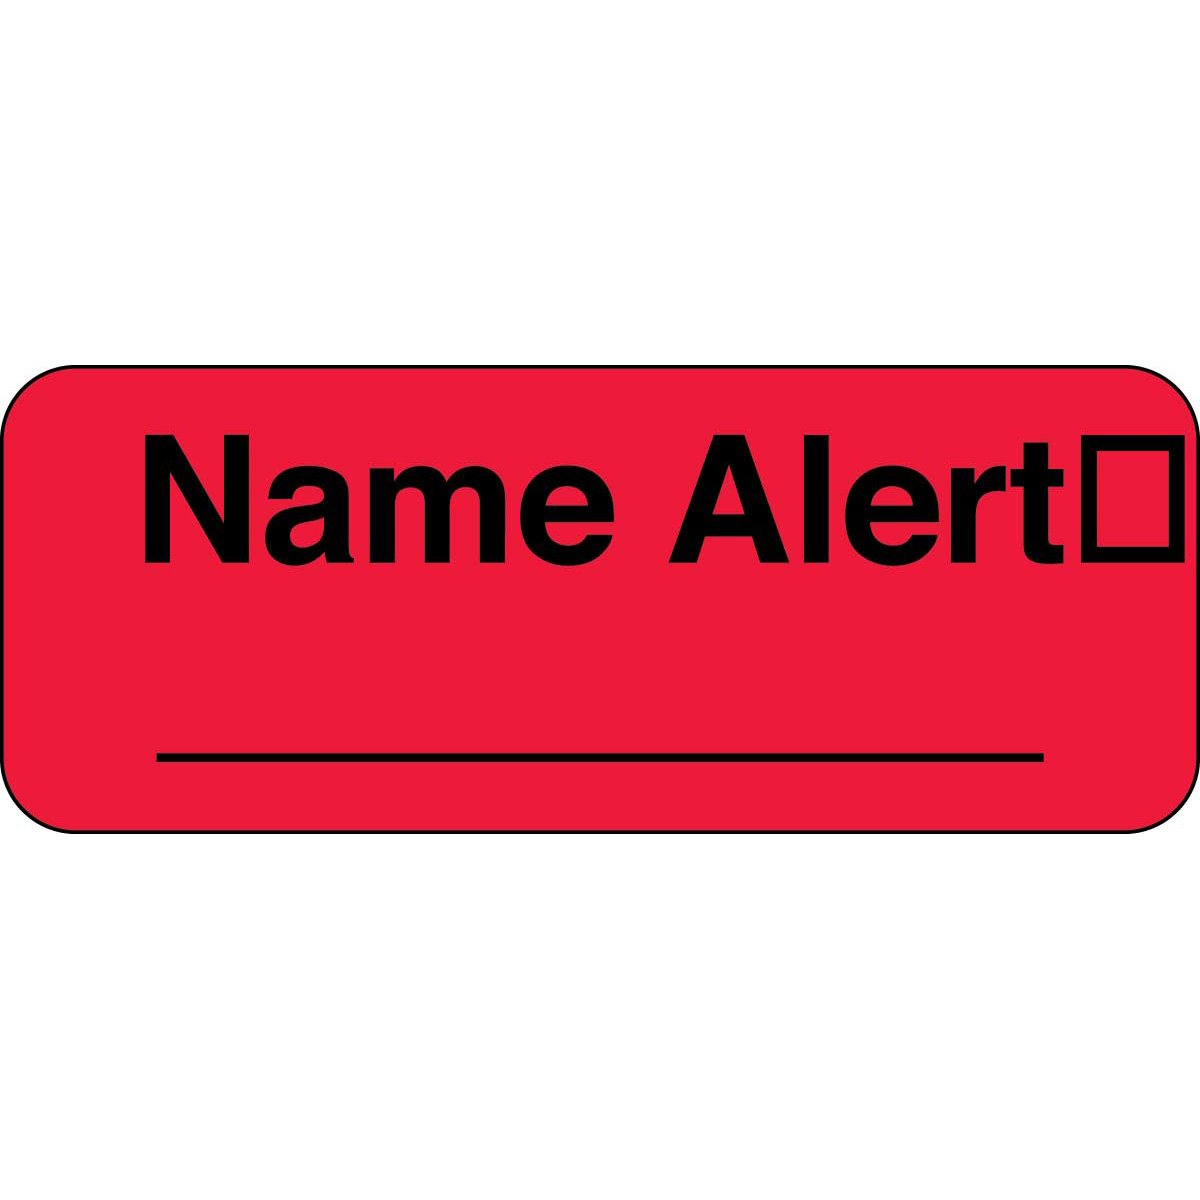 PDC Healthcare 59702053 Paper Label, Fluorescent Red Label with Black Text, ''Permanent Name Alert'', 2.25'' Width x 0.875'' Length (Roll of 1000)